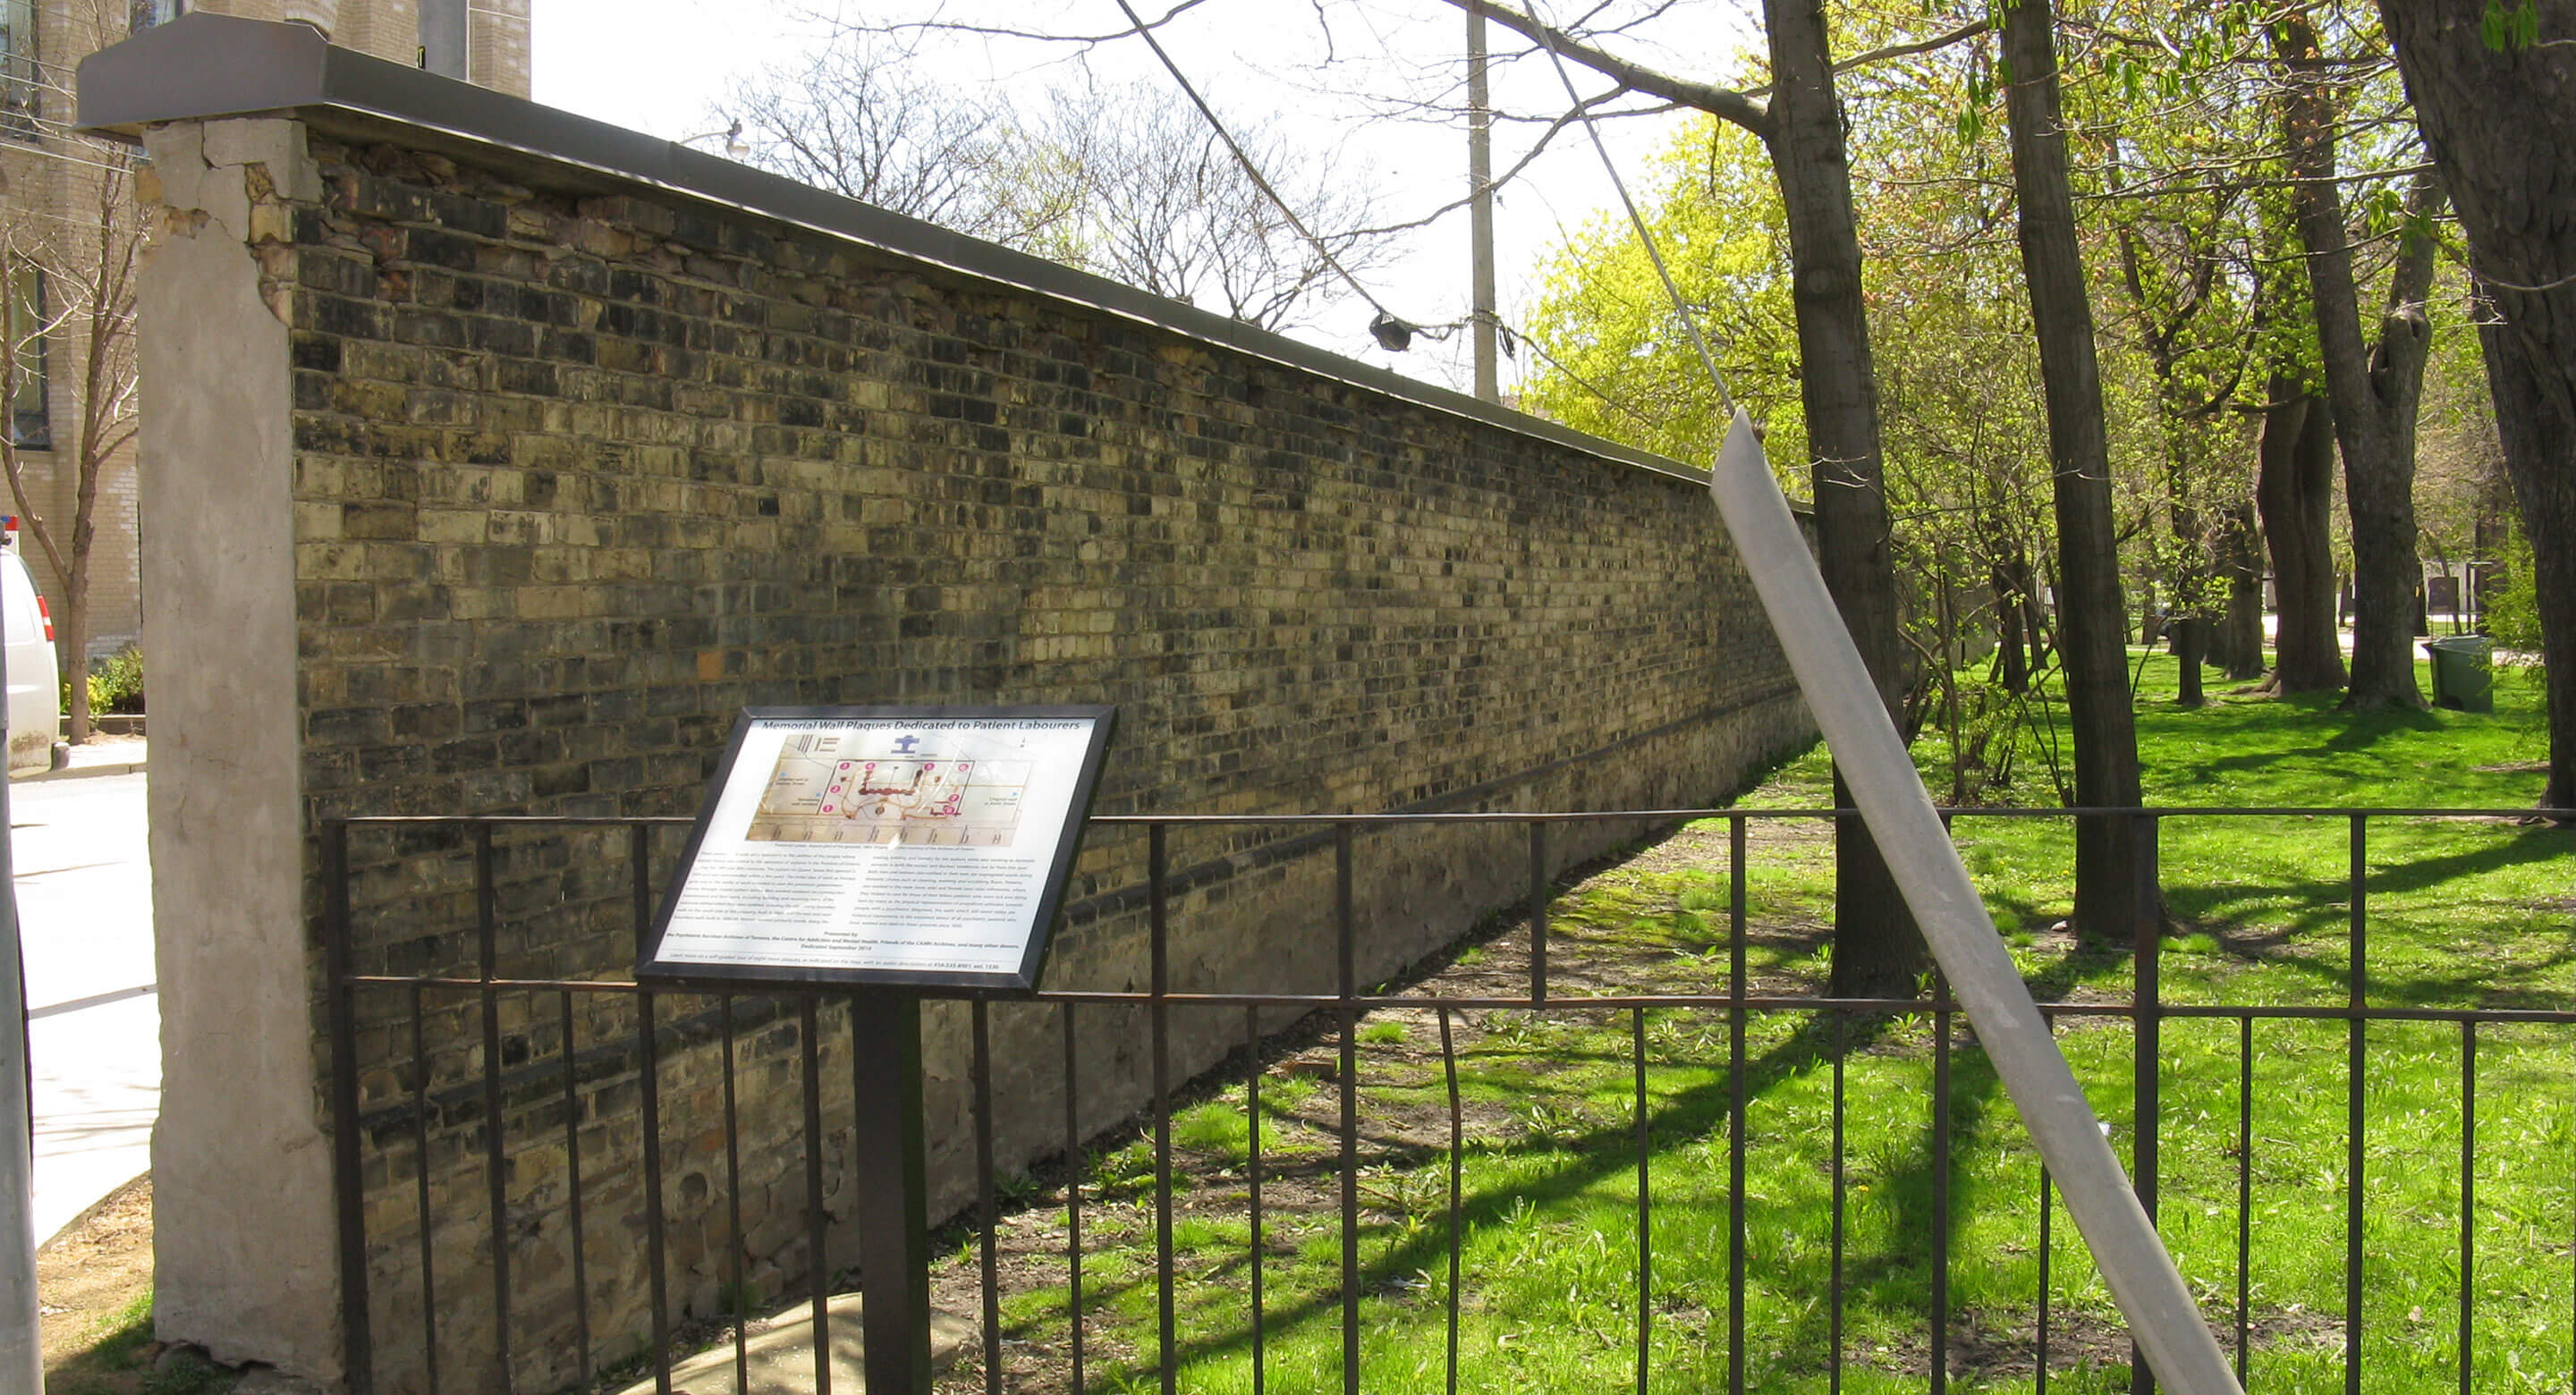 Historic wall and plaque